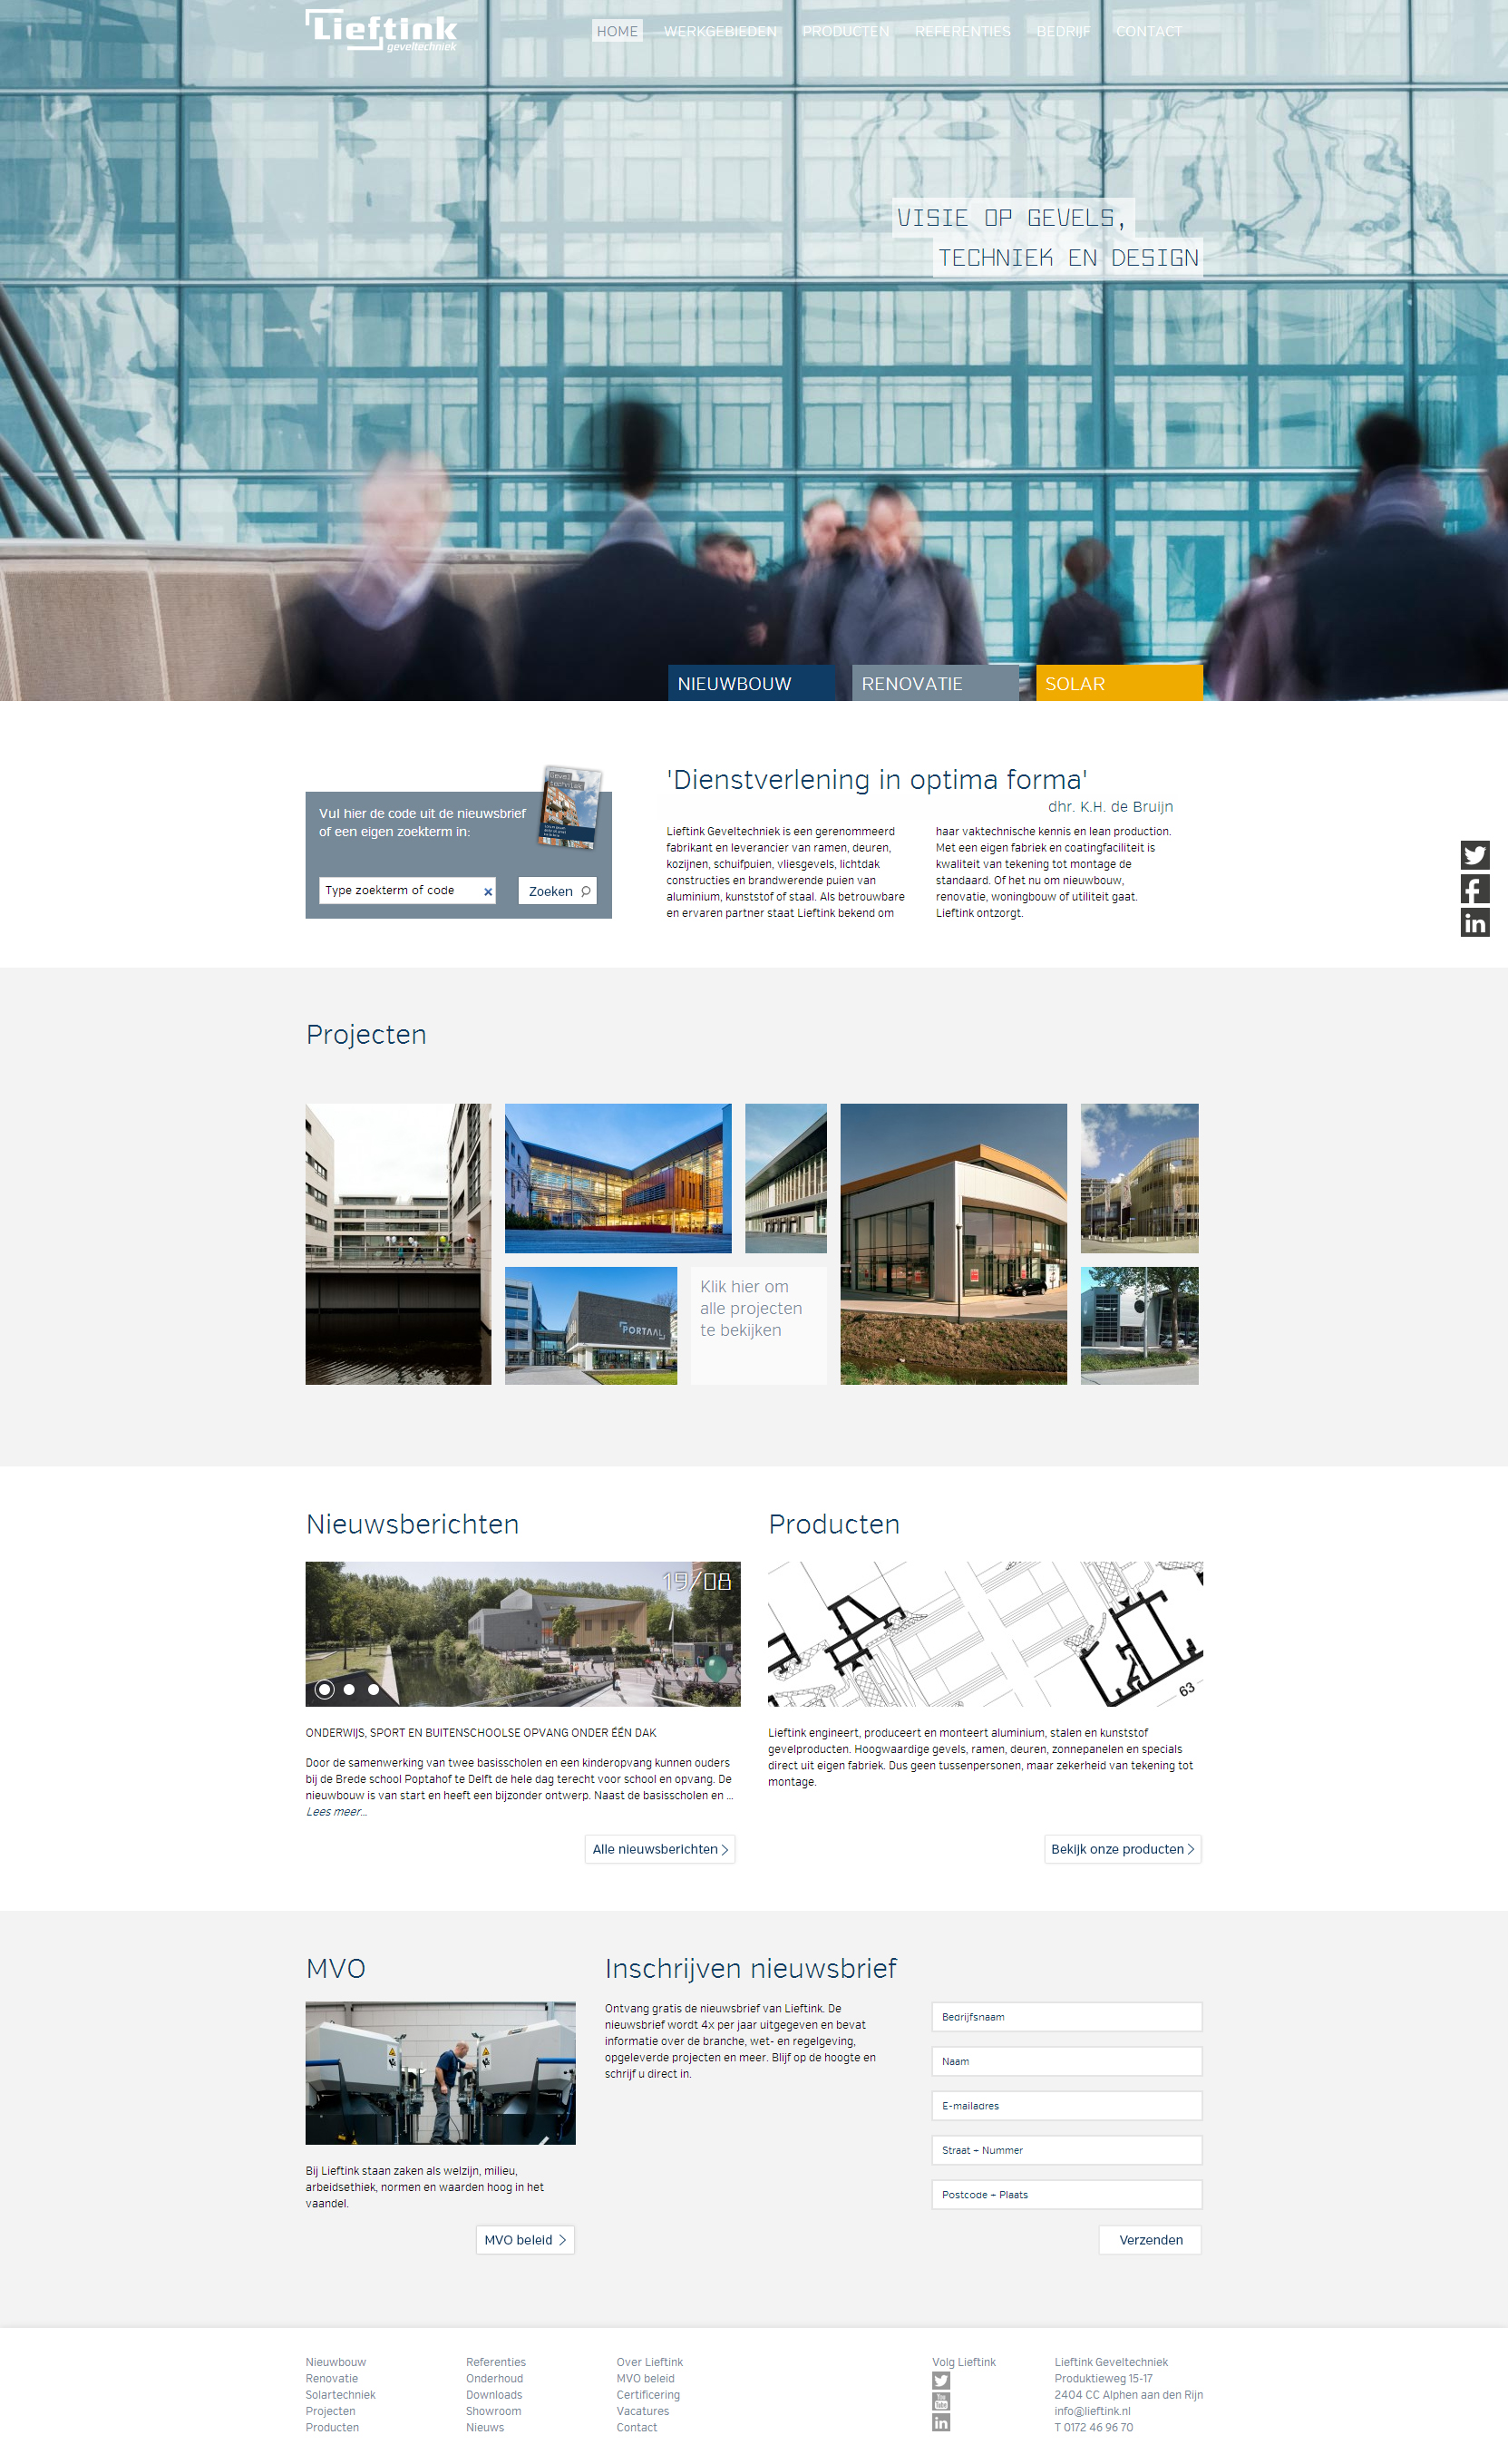 Lieftink - Clean Architecture Website For Your Inspiration